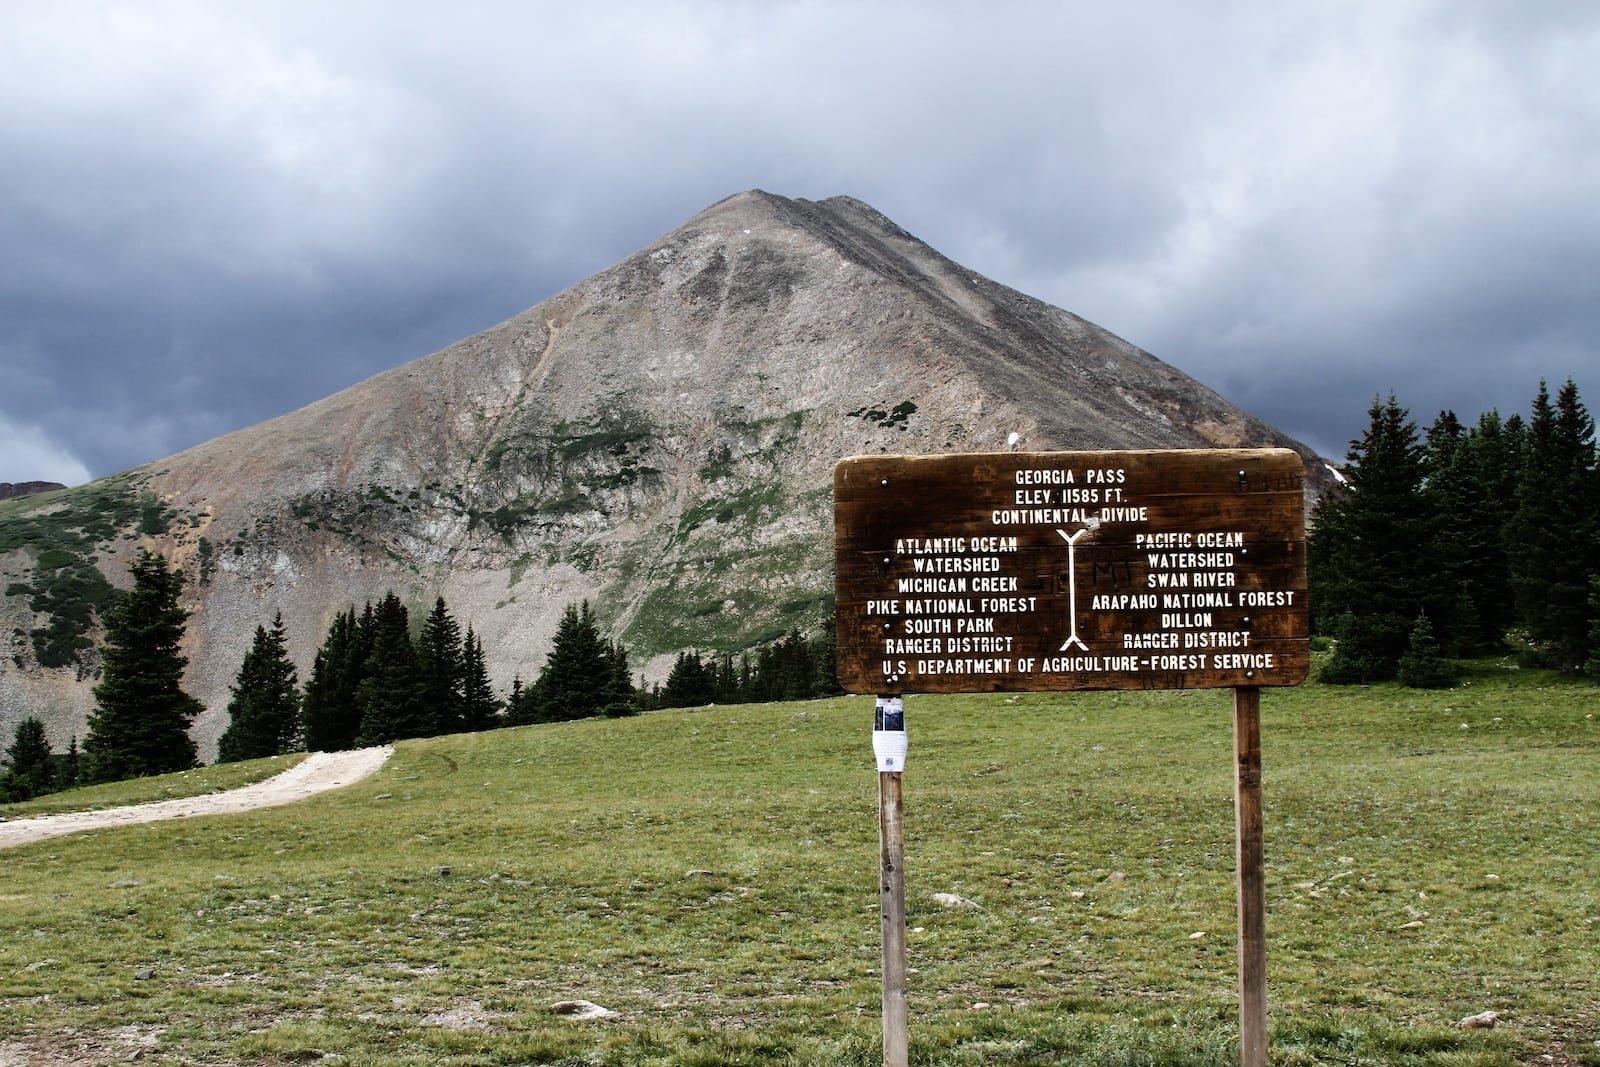 Georgia Pass sign, Colorado